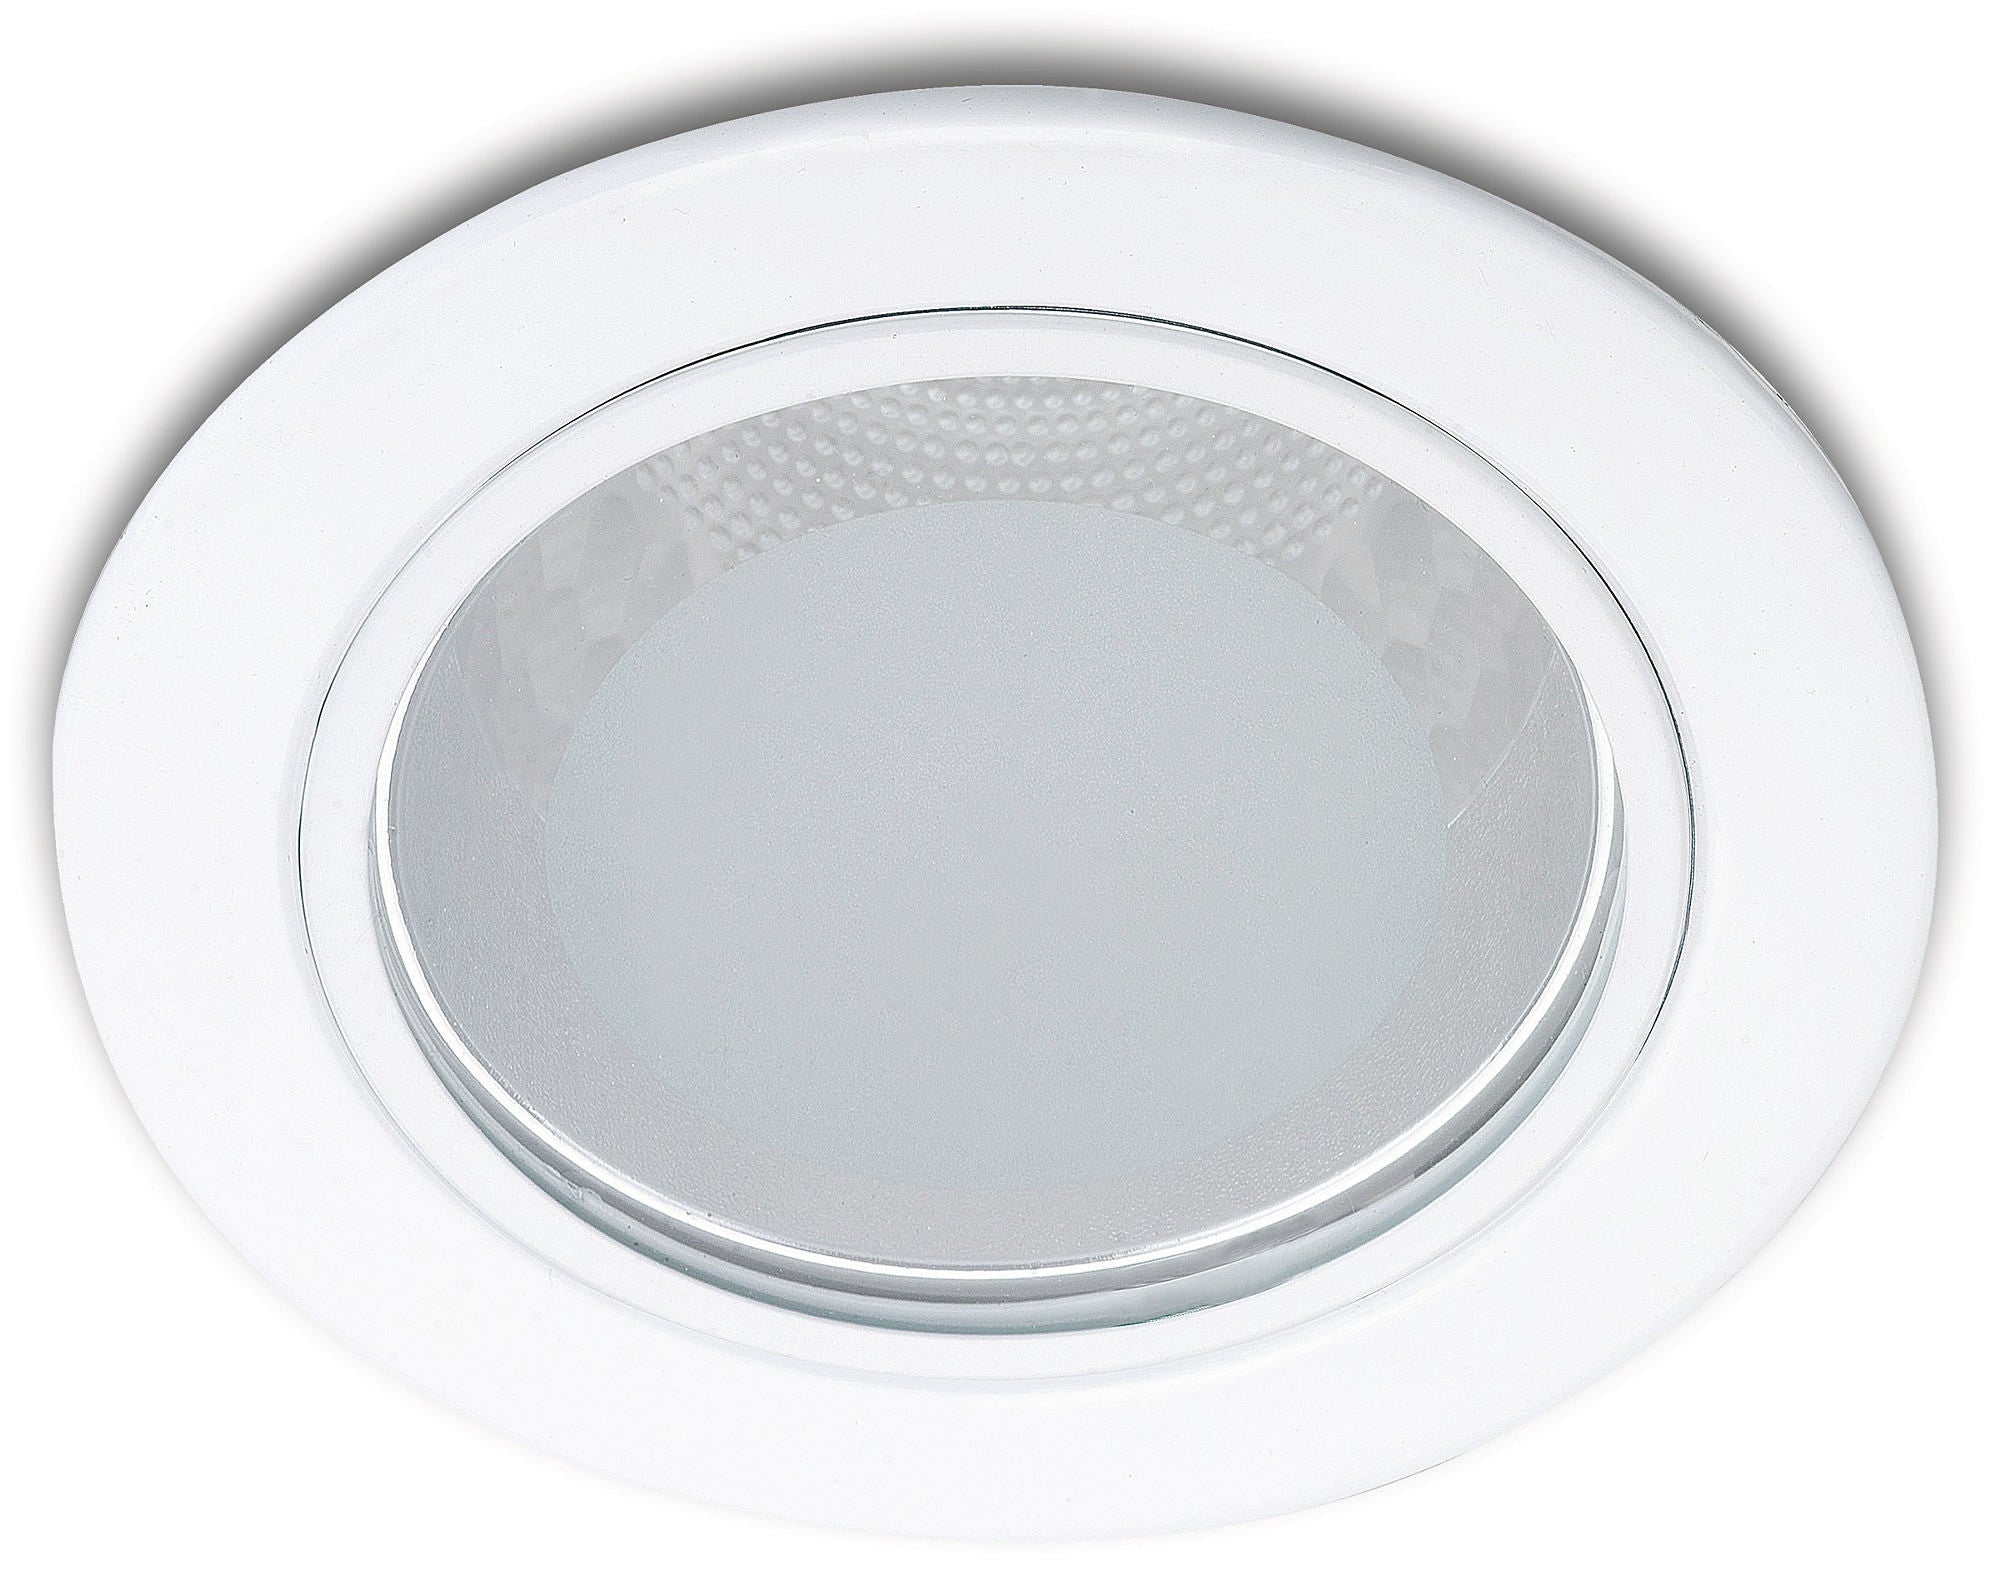 Philips Recessed Spot Light (1x9W)